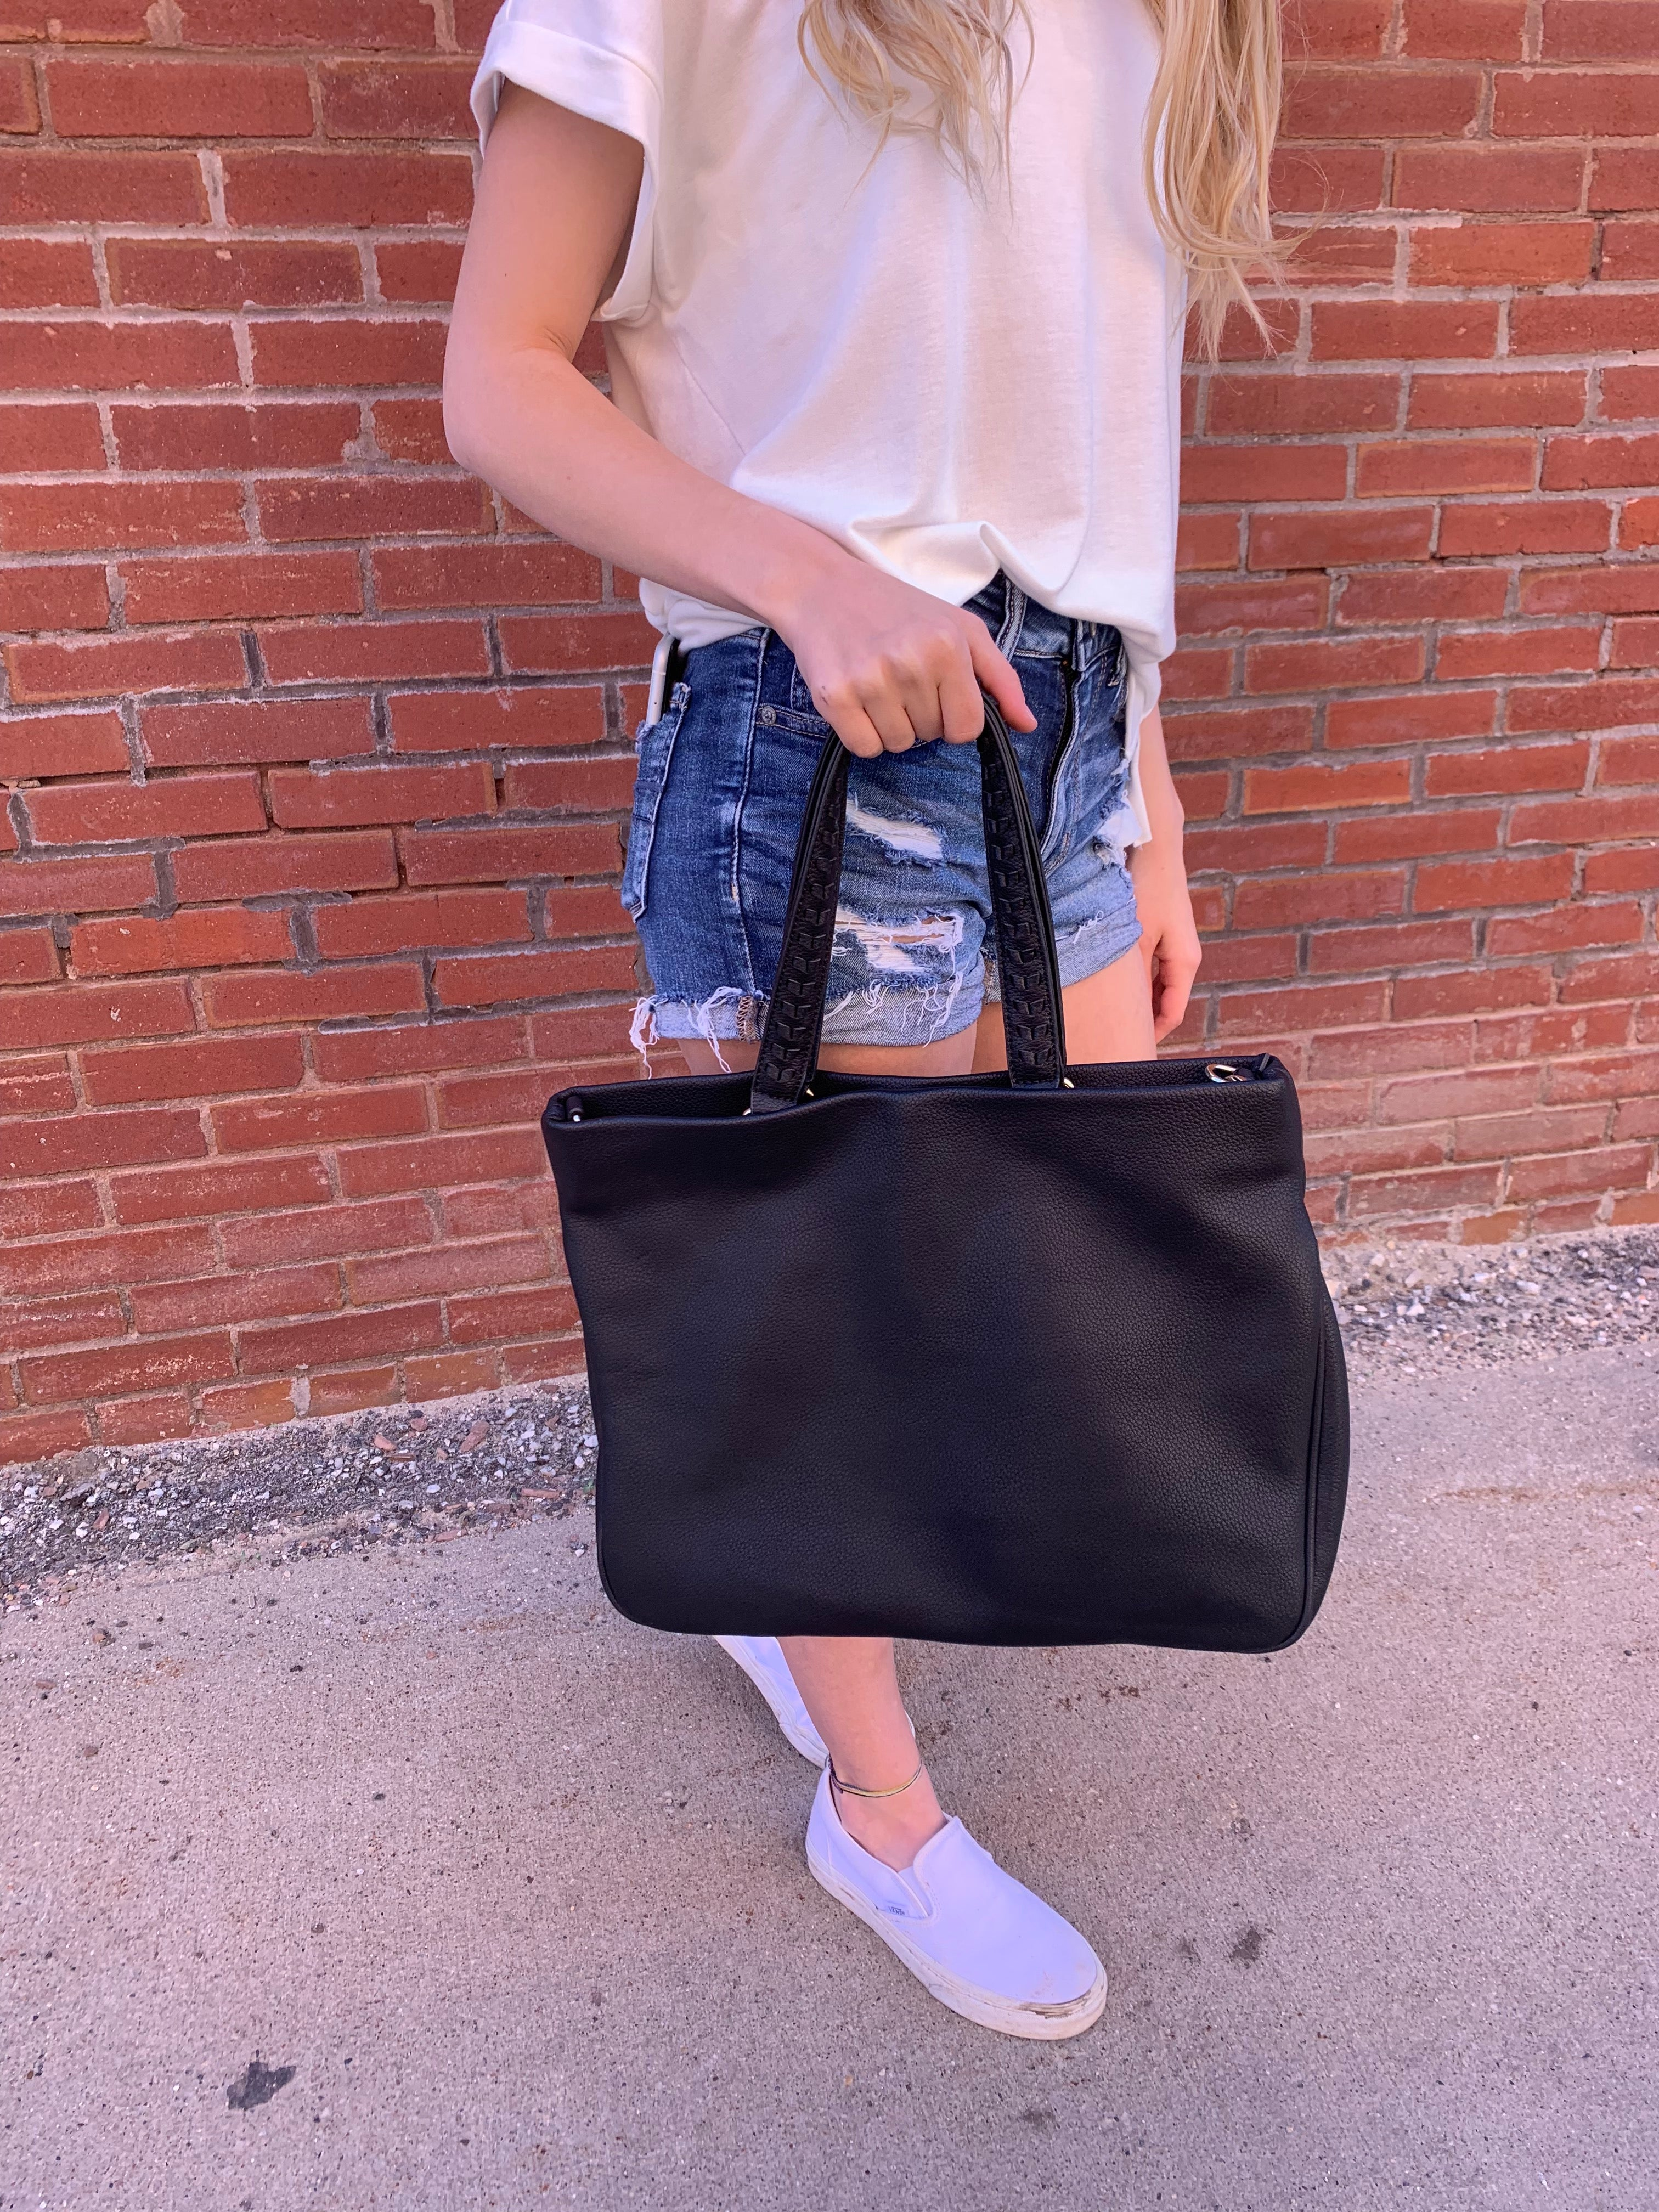 Follow My Tricks Black Square Purse